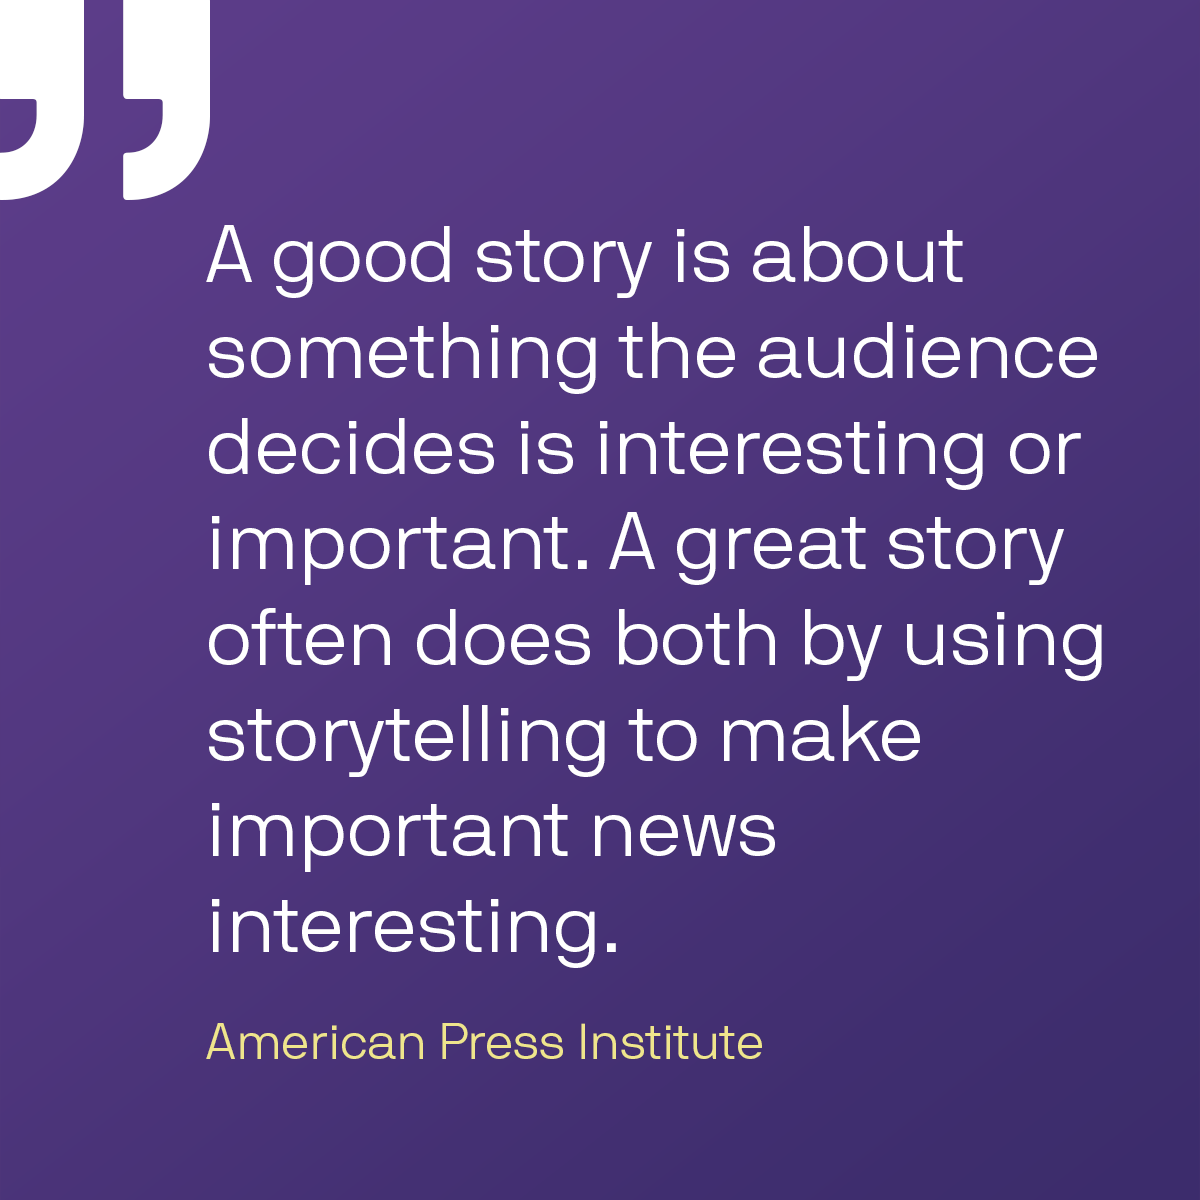 A quote from the American Press Institute